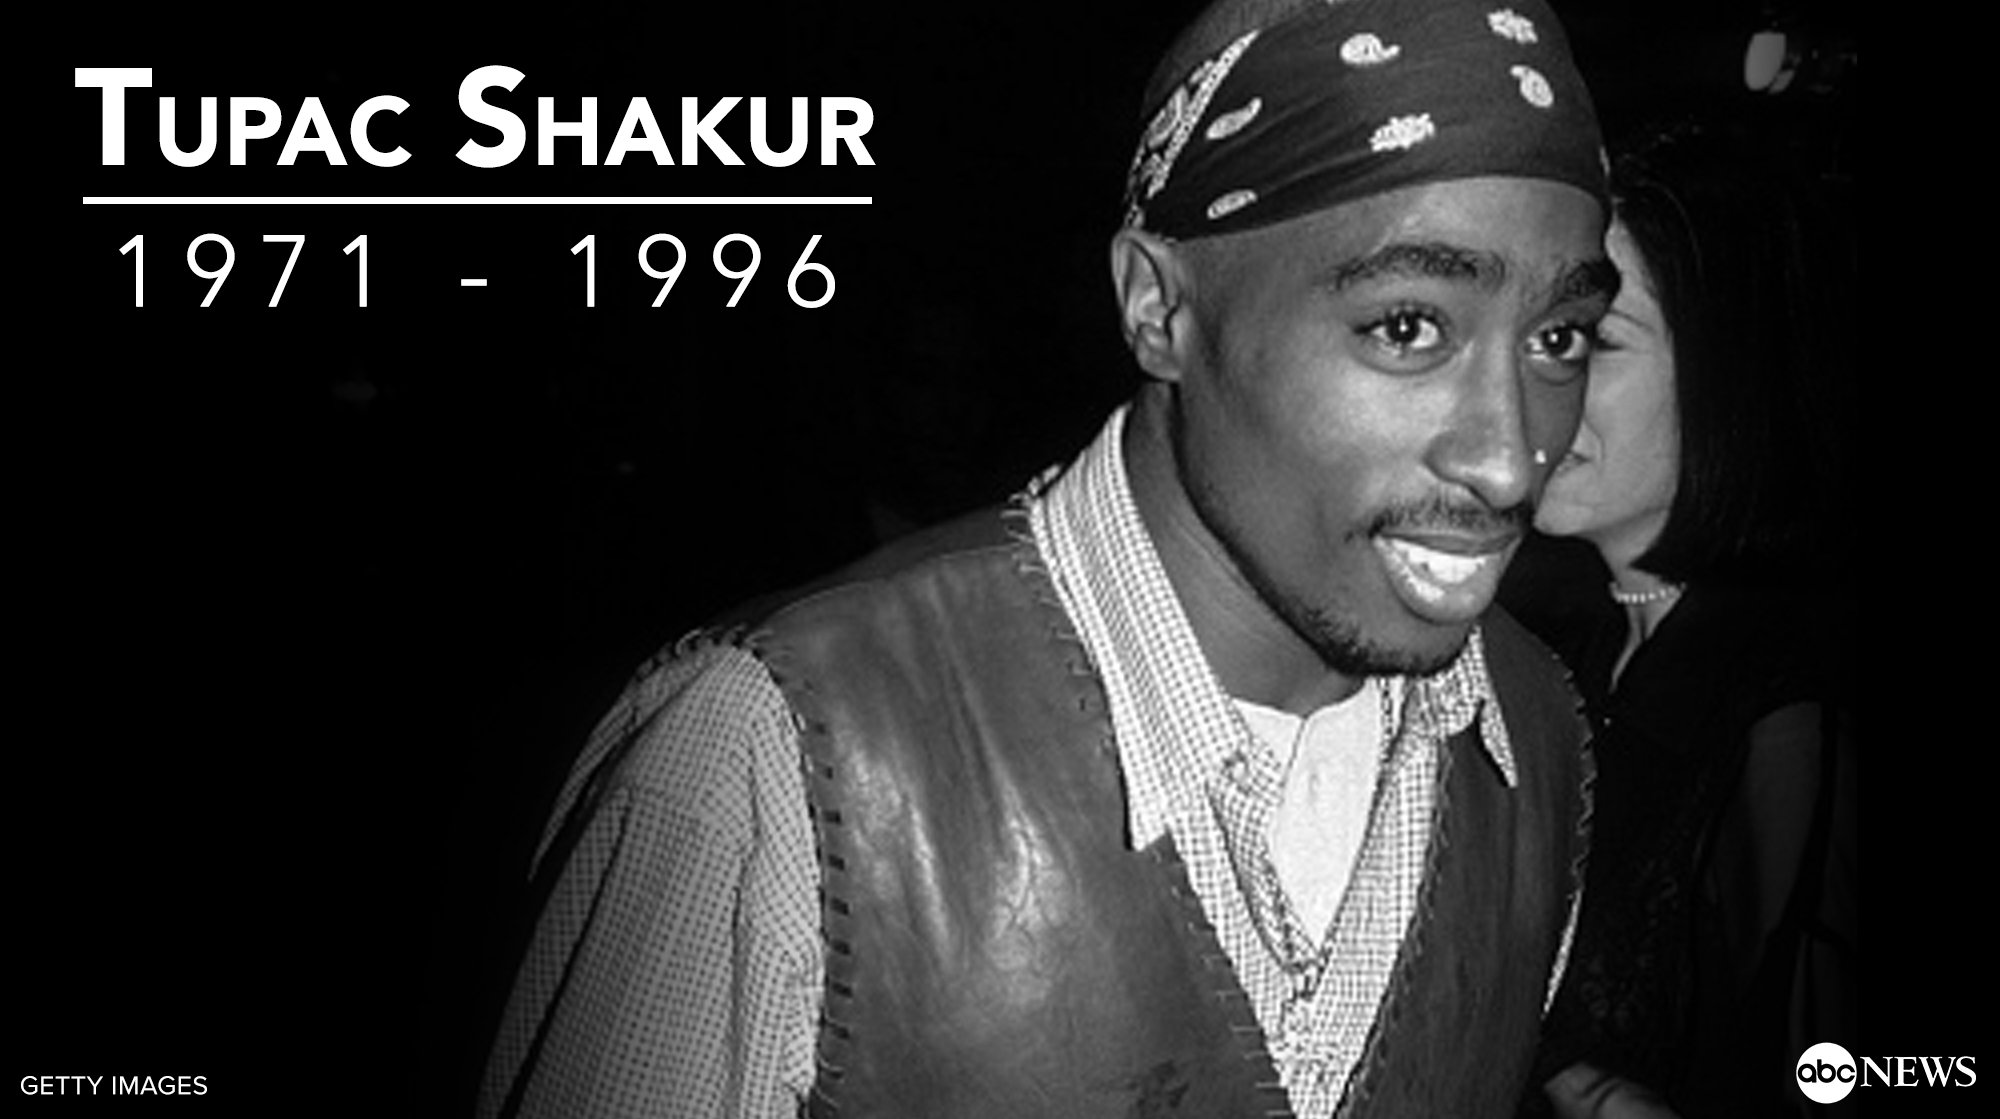 Happy birthday, Tupac.  The rapper would have turned 45 years old today. https://t.co/Ht4o5yPh7z